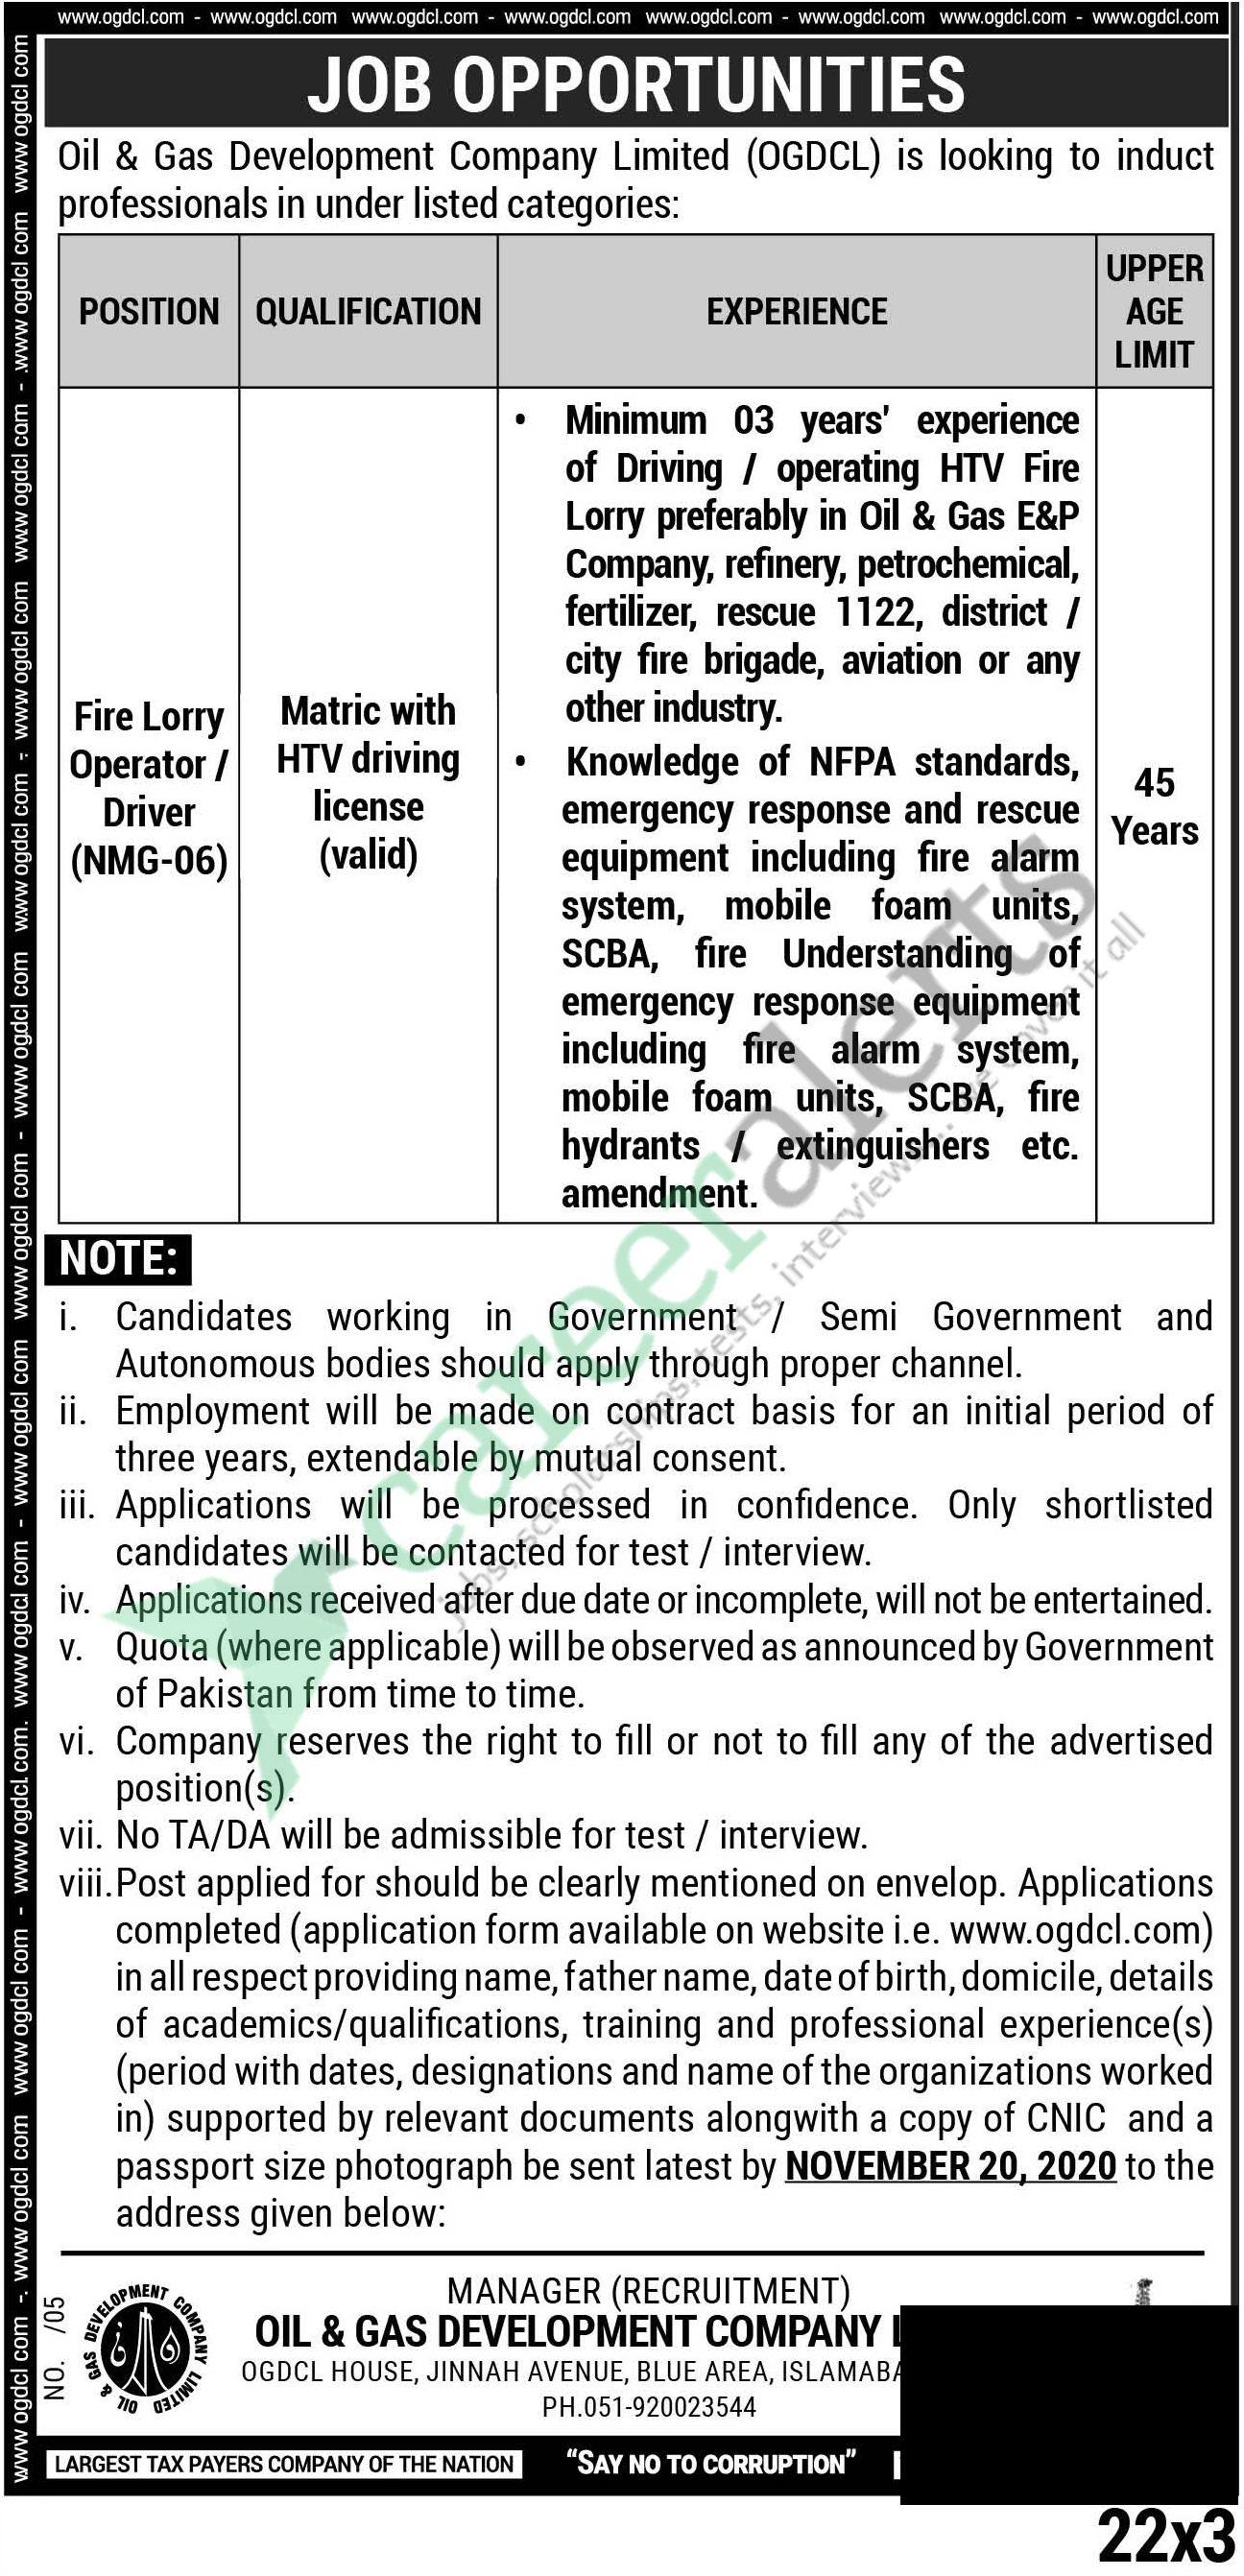 OGDCL (Oil and Gas Development Company Limited) Jobs November 2020